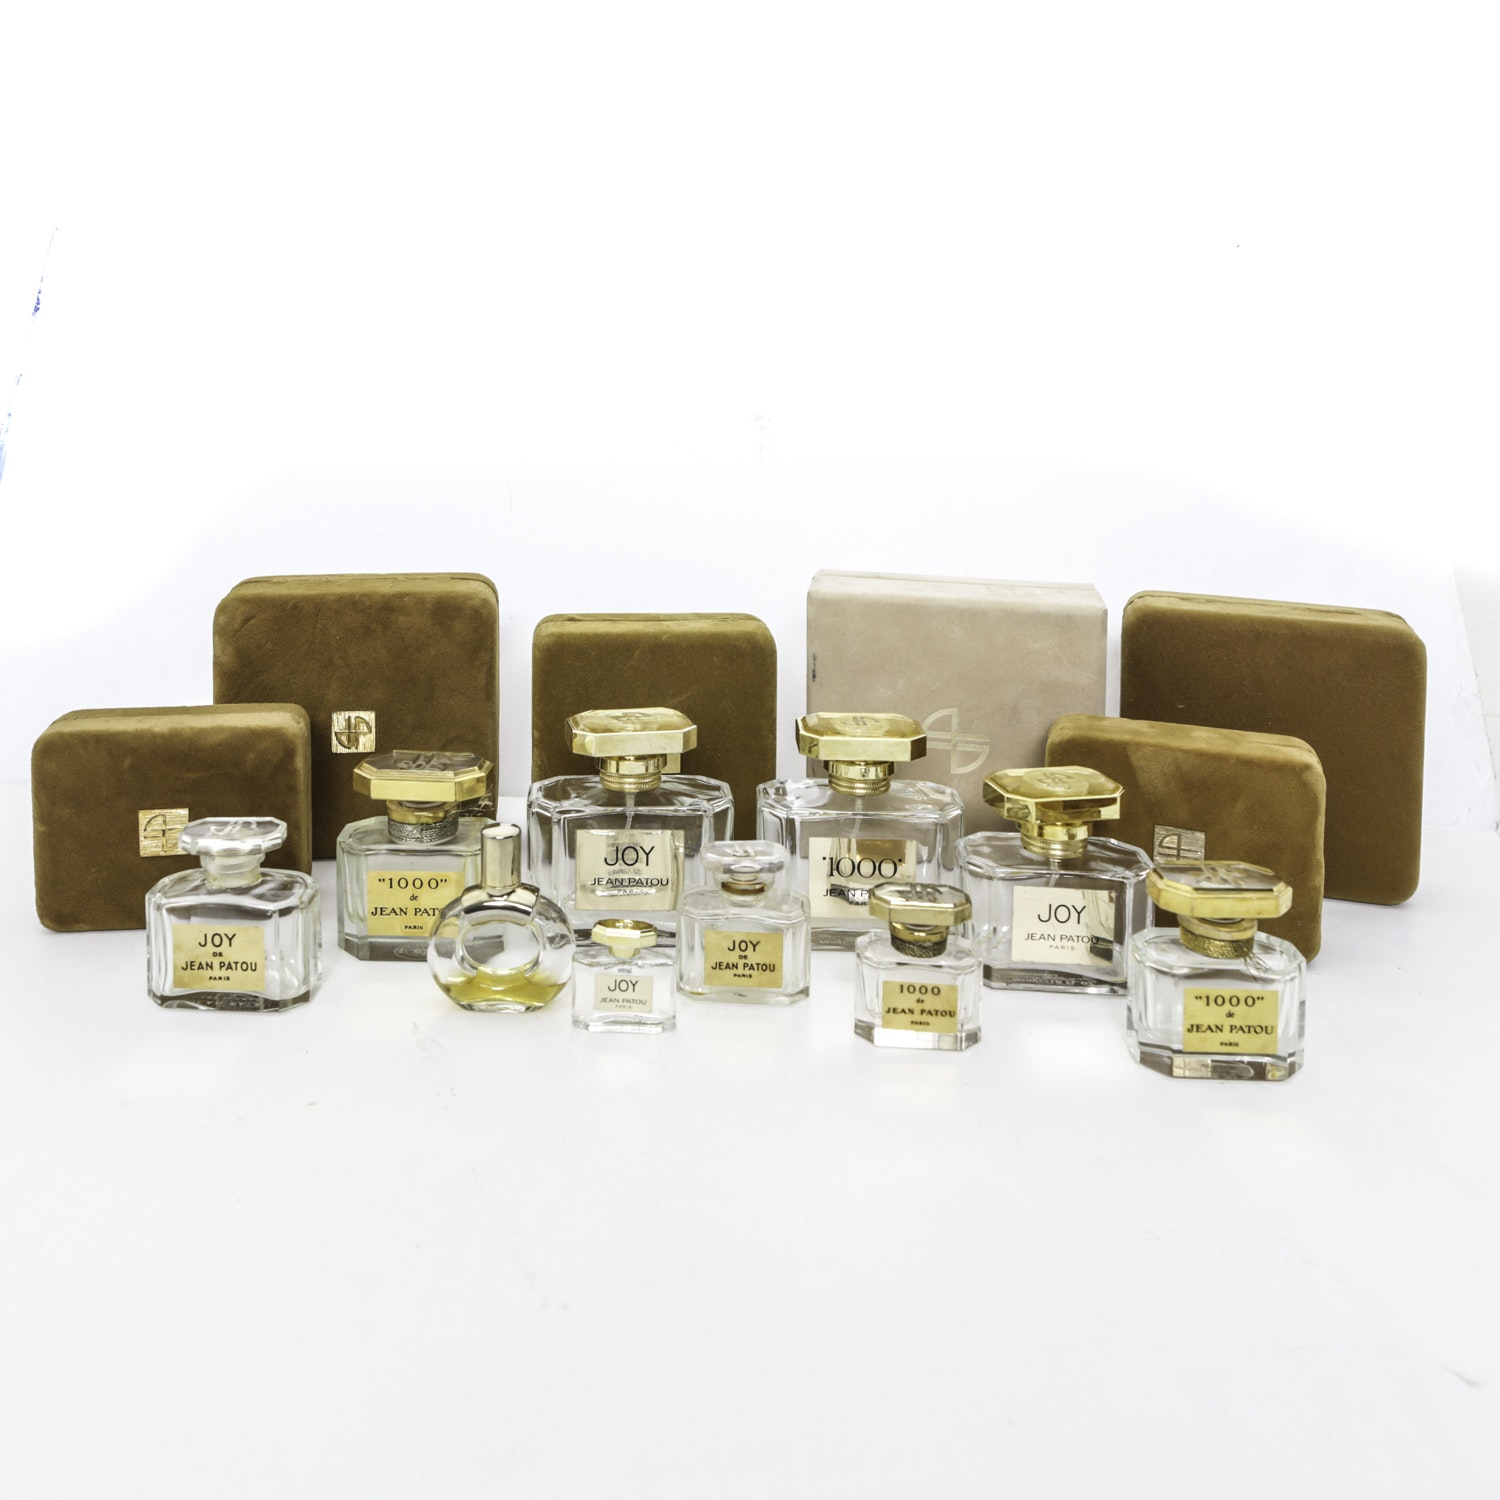 Jean Patou and Hermes Perfume Bottles